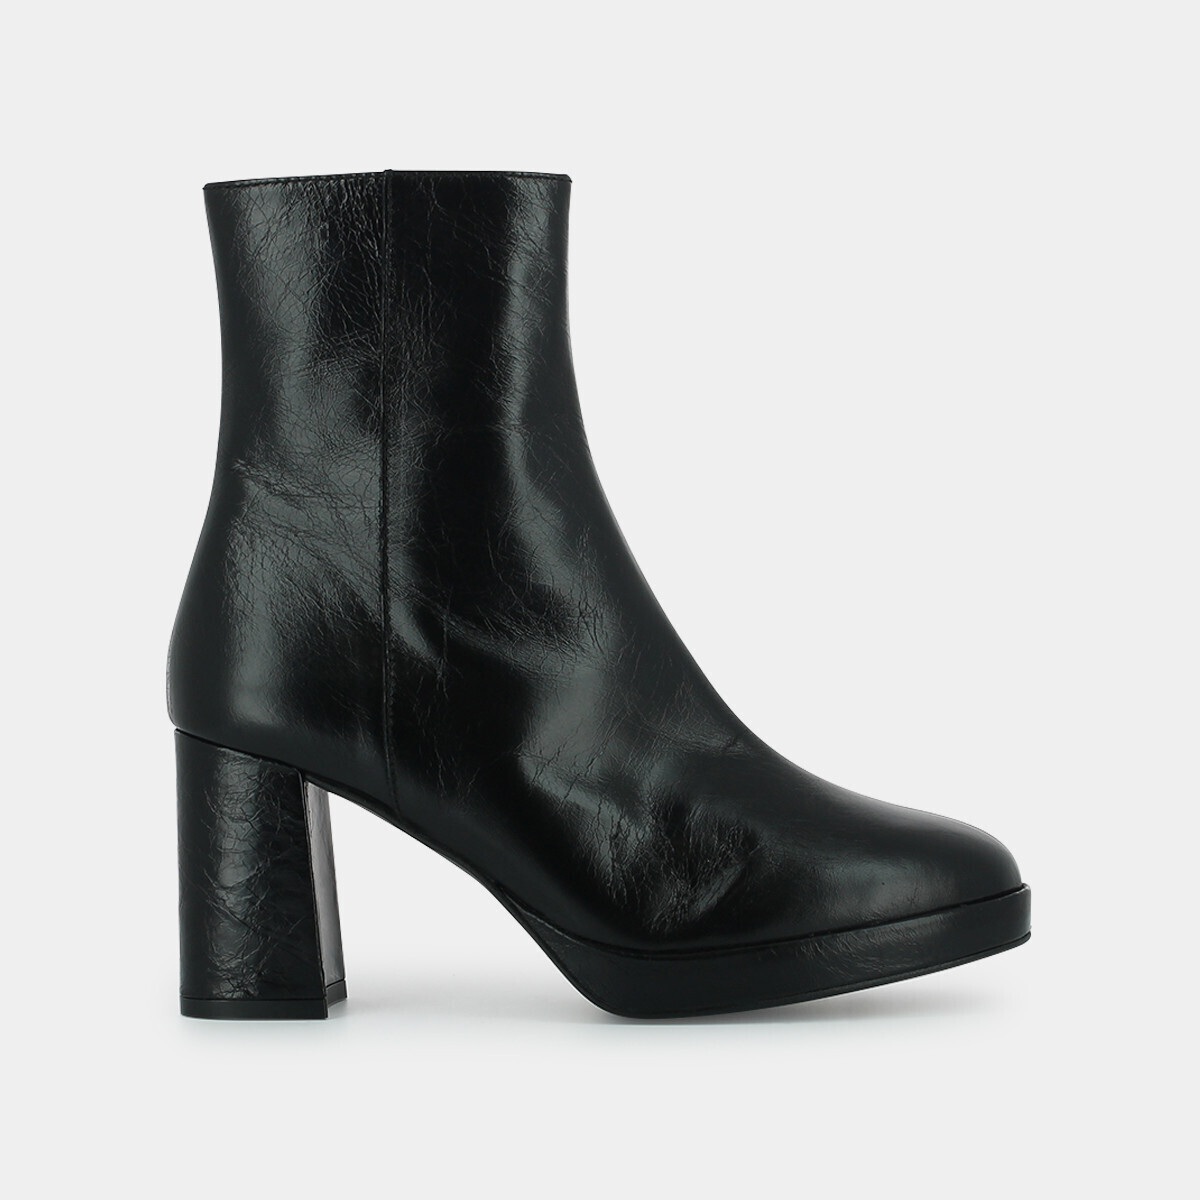 Ankle boots with heel and rounded toe in black leather - Jonak noir